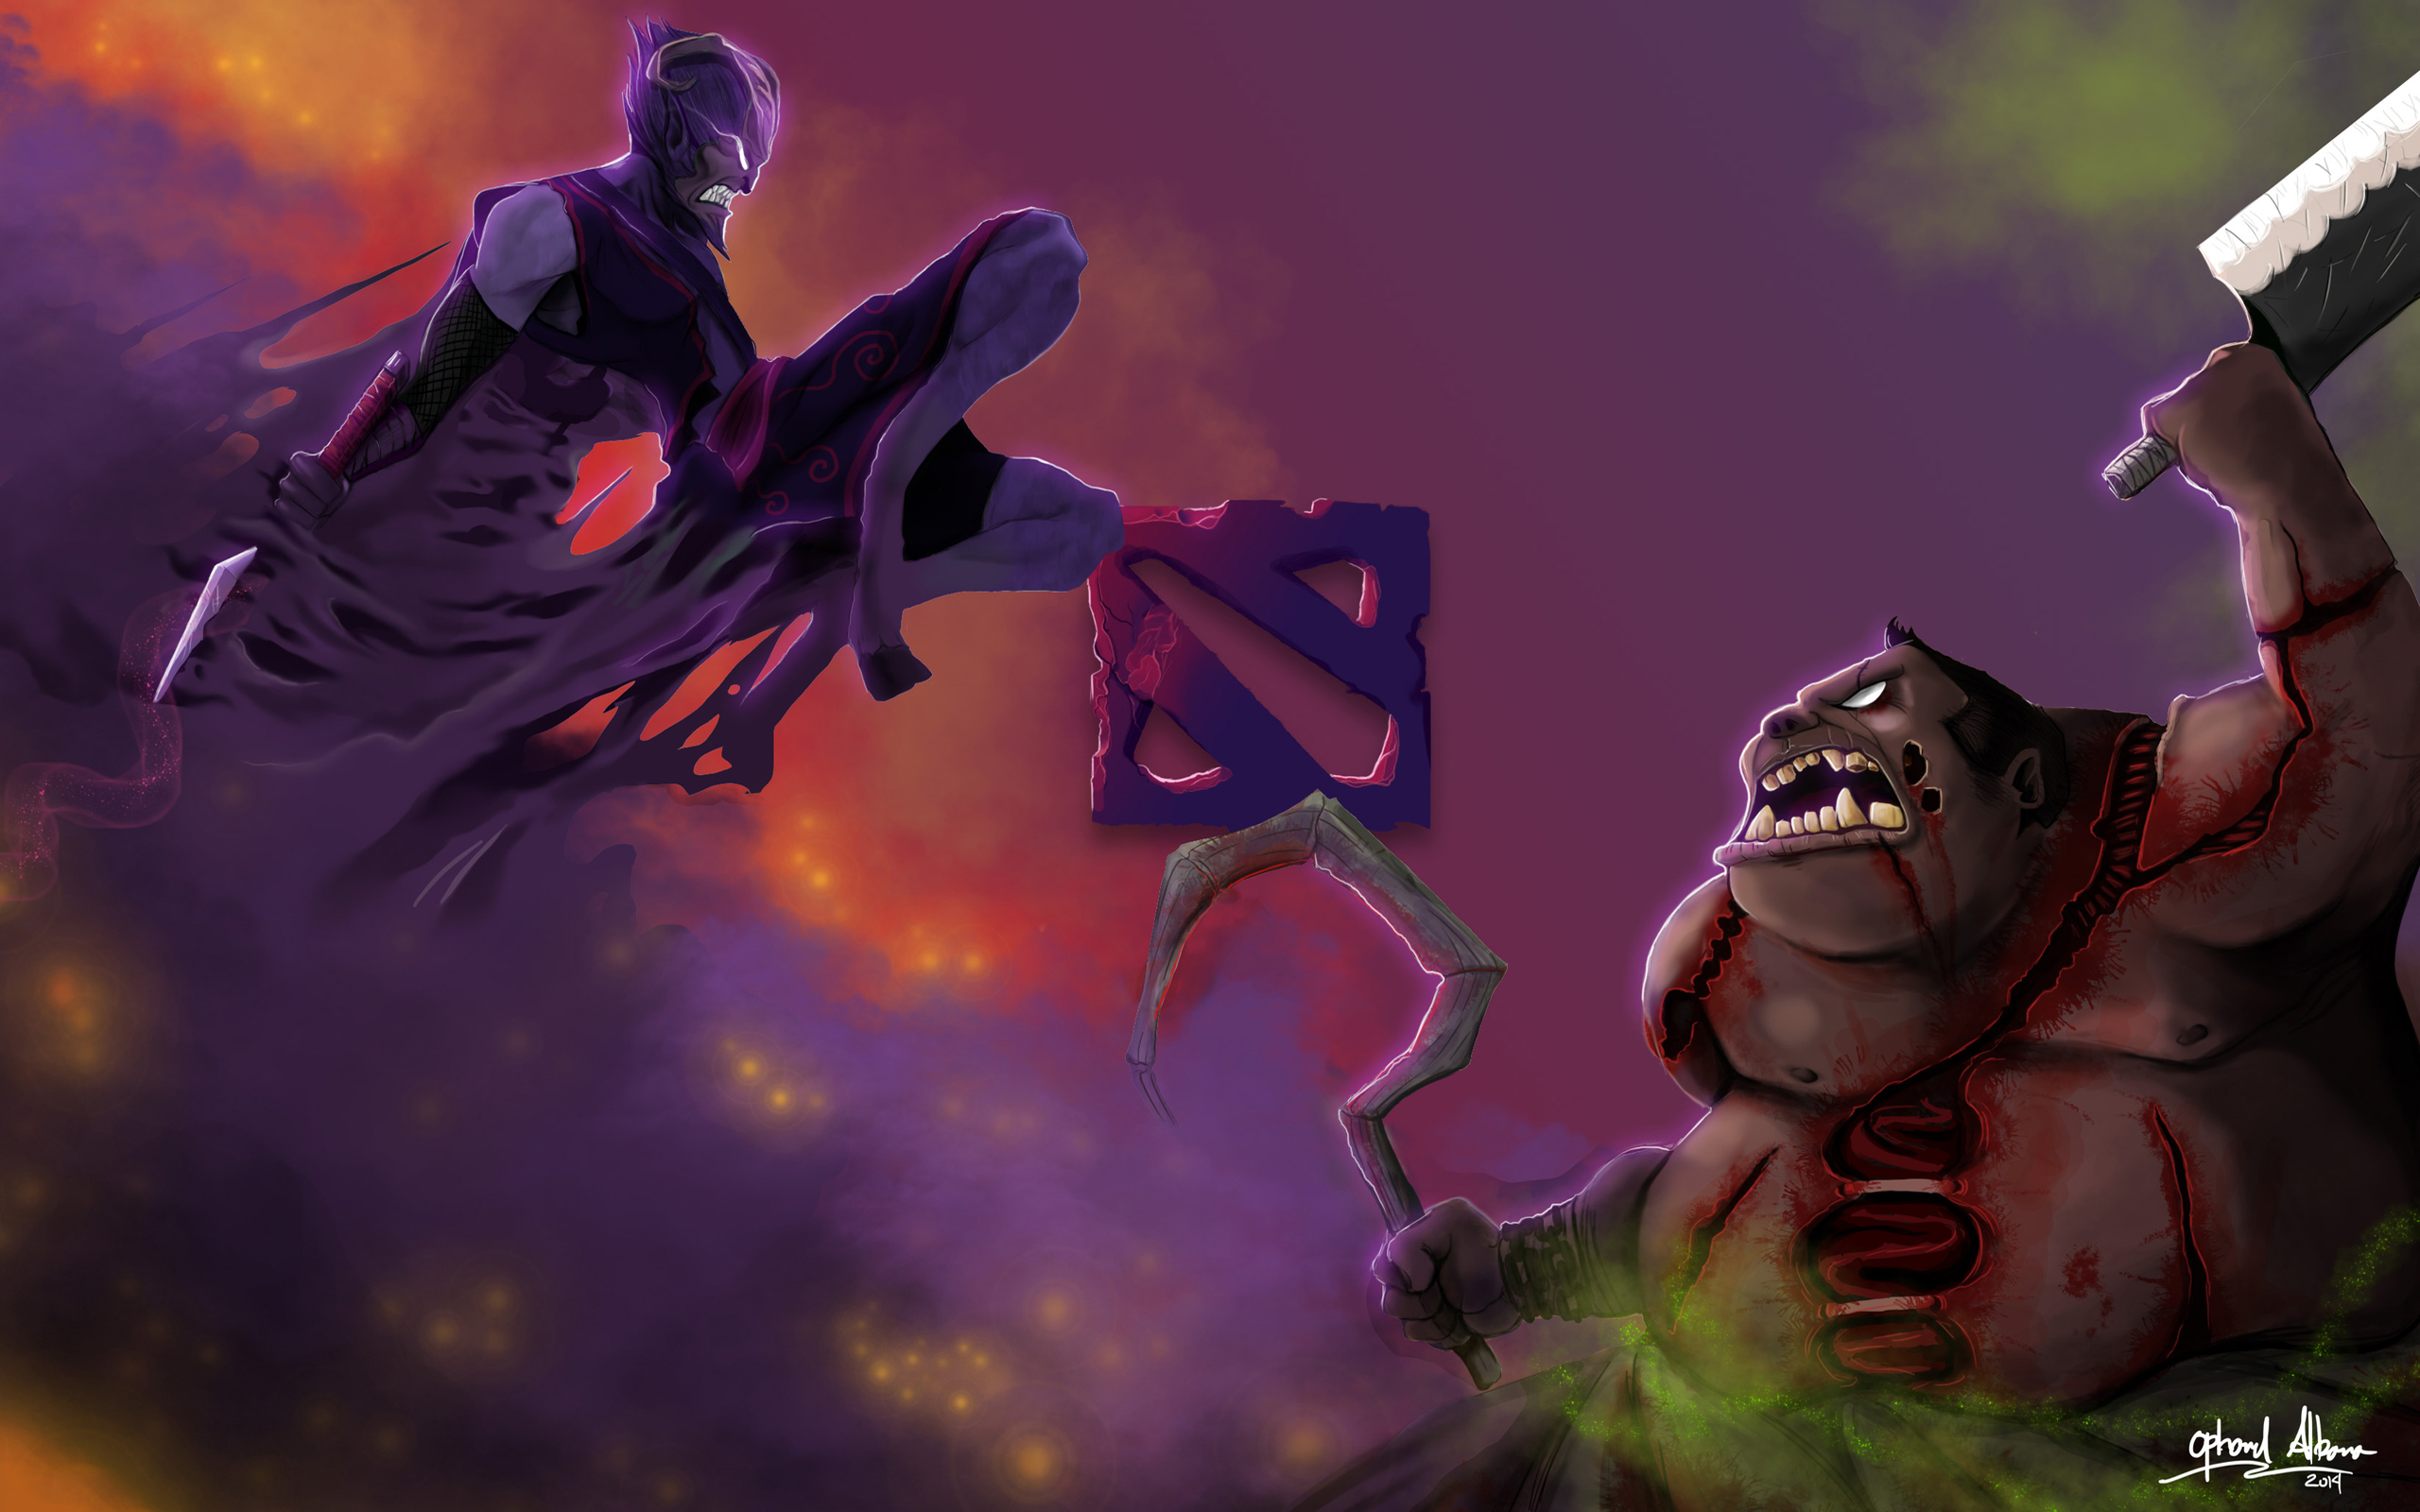 Dota 2 Hd Wallpaper Background Image 2560x1600 Id 765758 Wallpaper Abyss